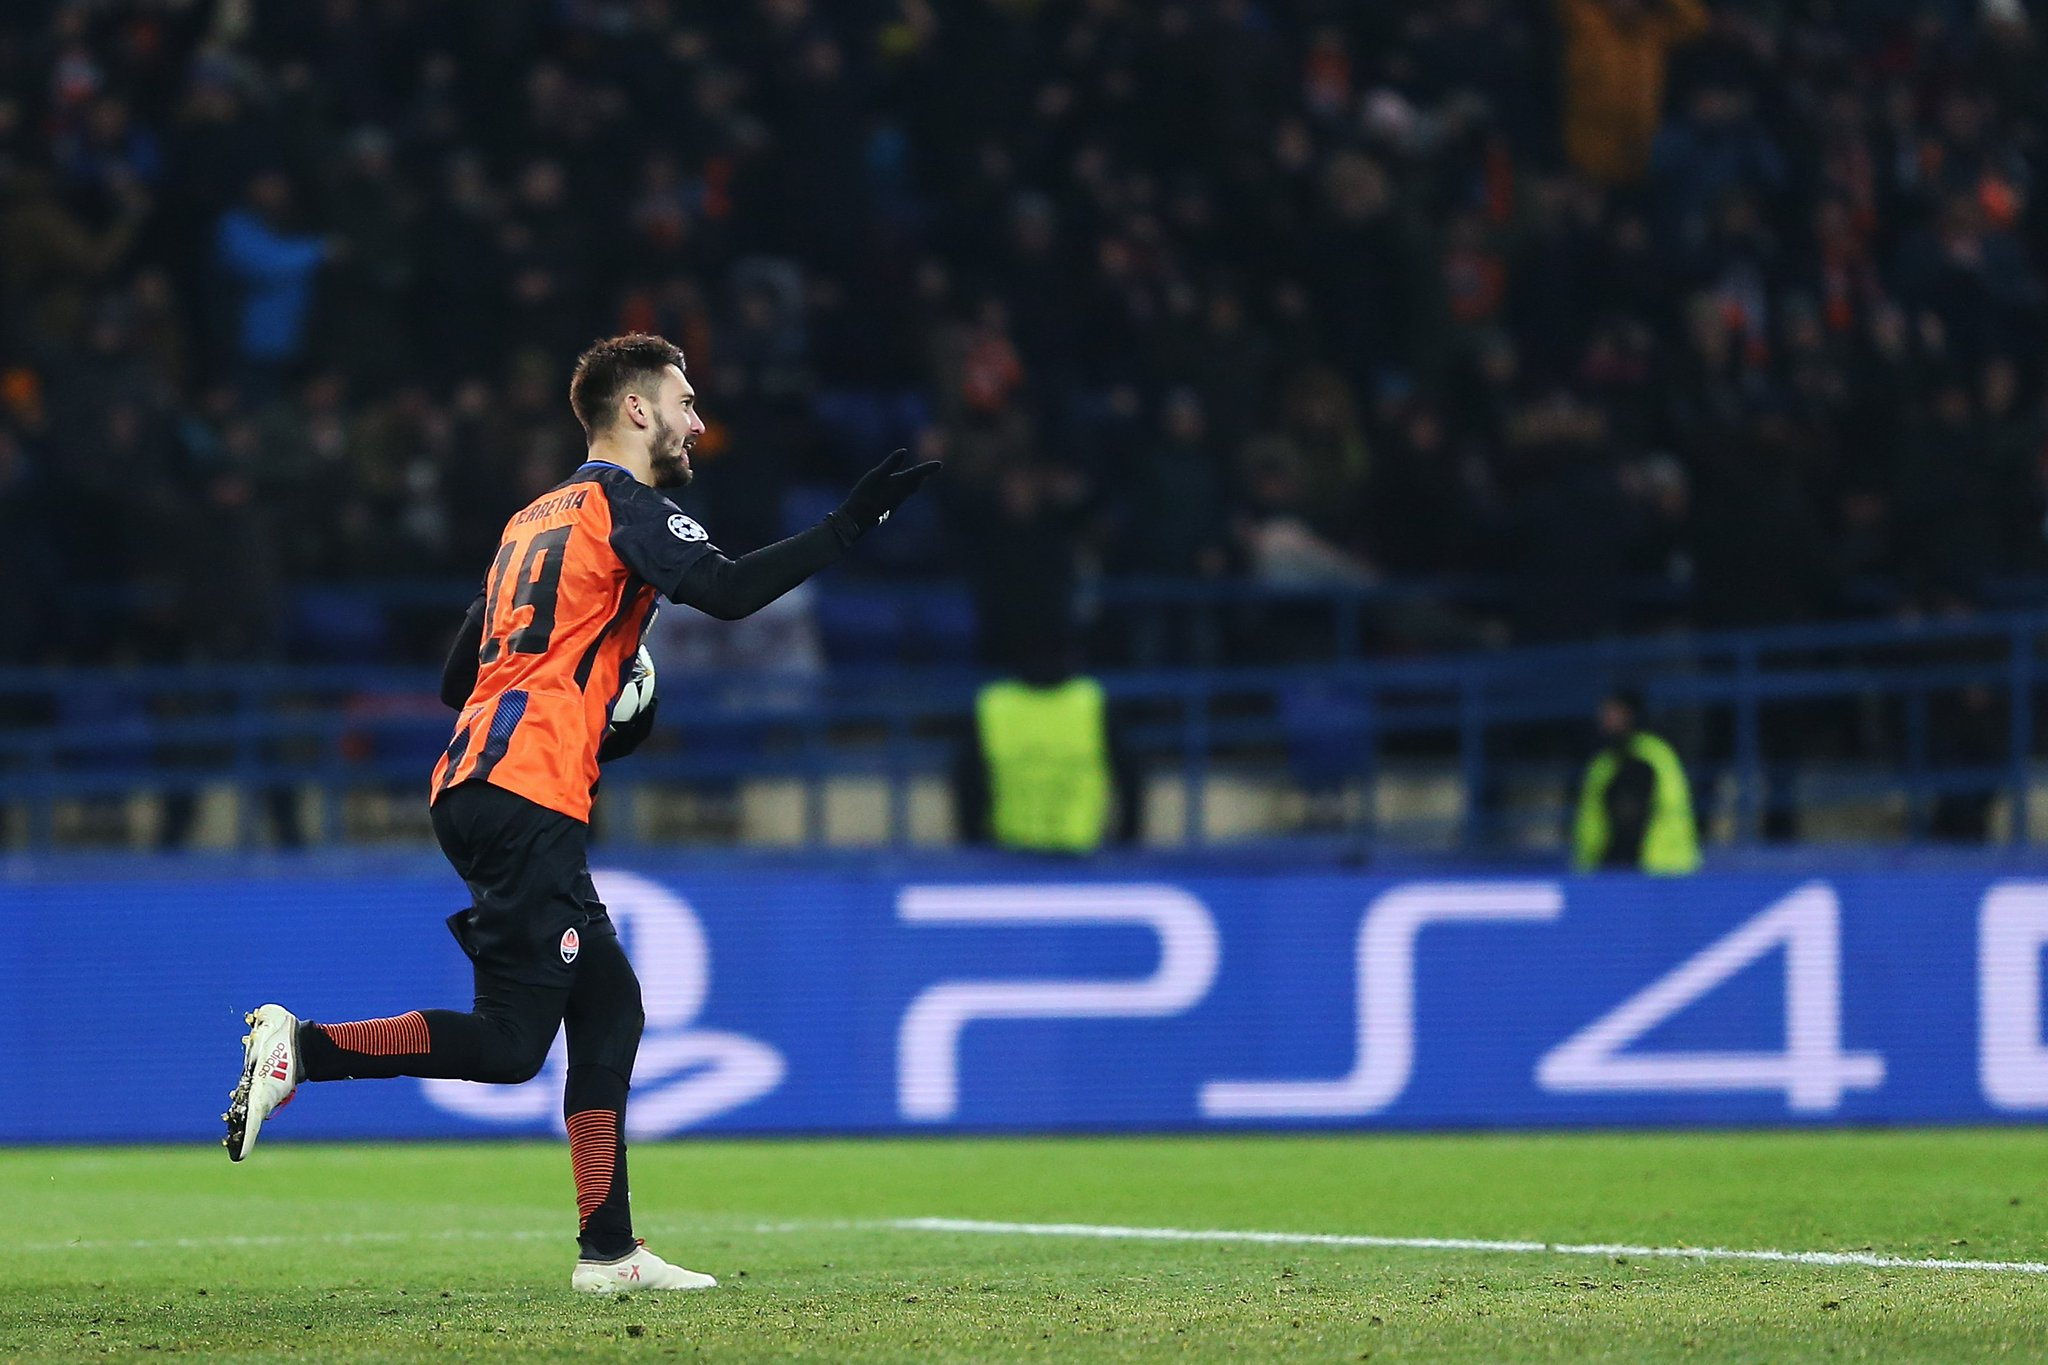 One to watch? ��  Facundo Ferreyra  has scored 16 goals in his last 16 games for Shakhtar. ������ #UCL https://t.co/S7aru1I9dr